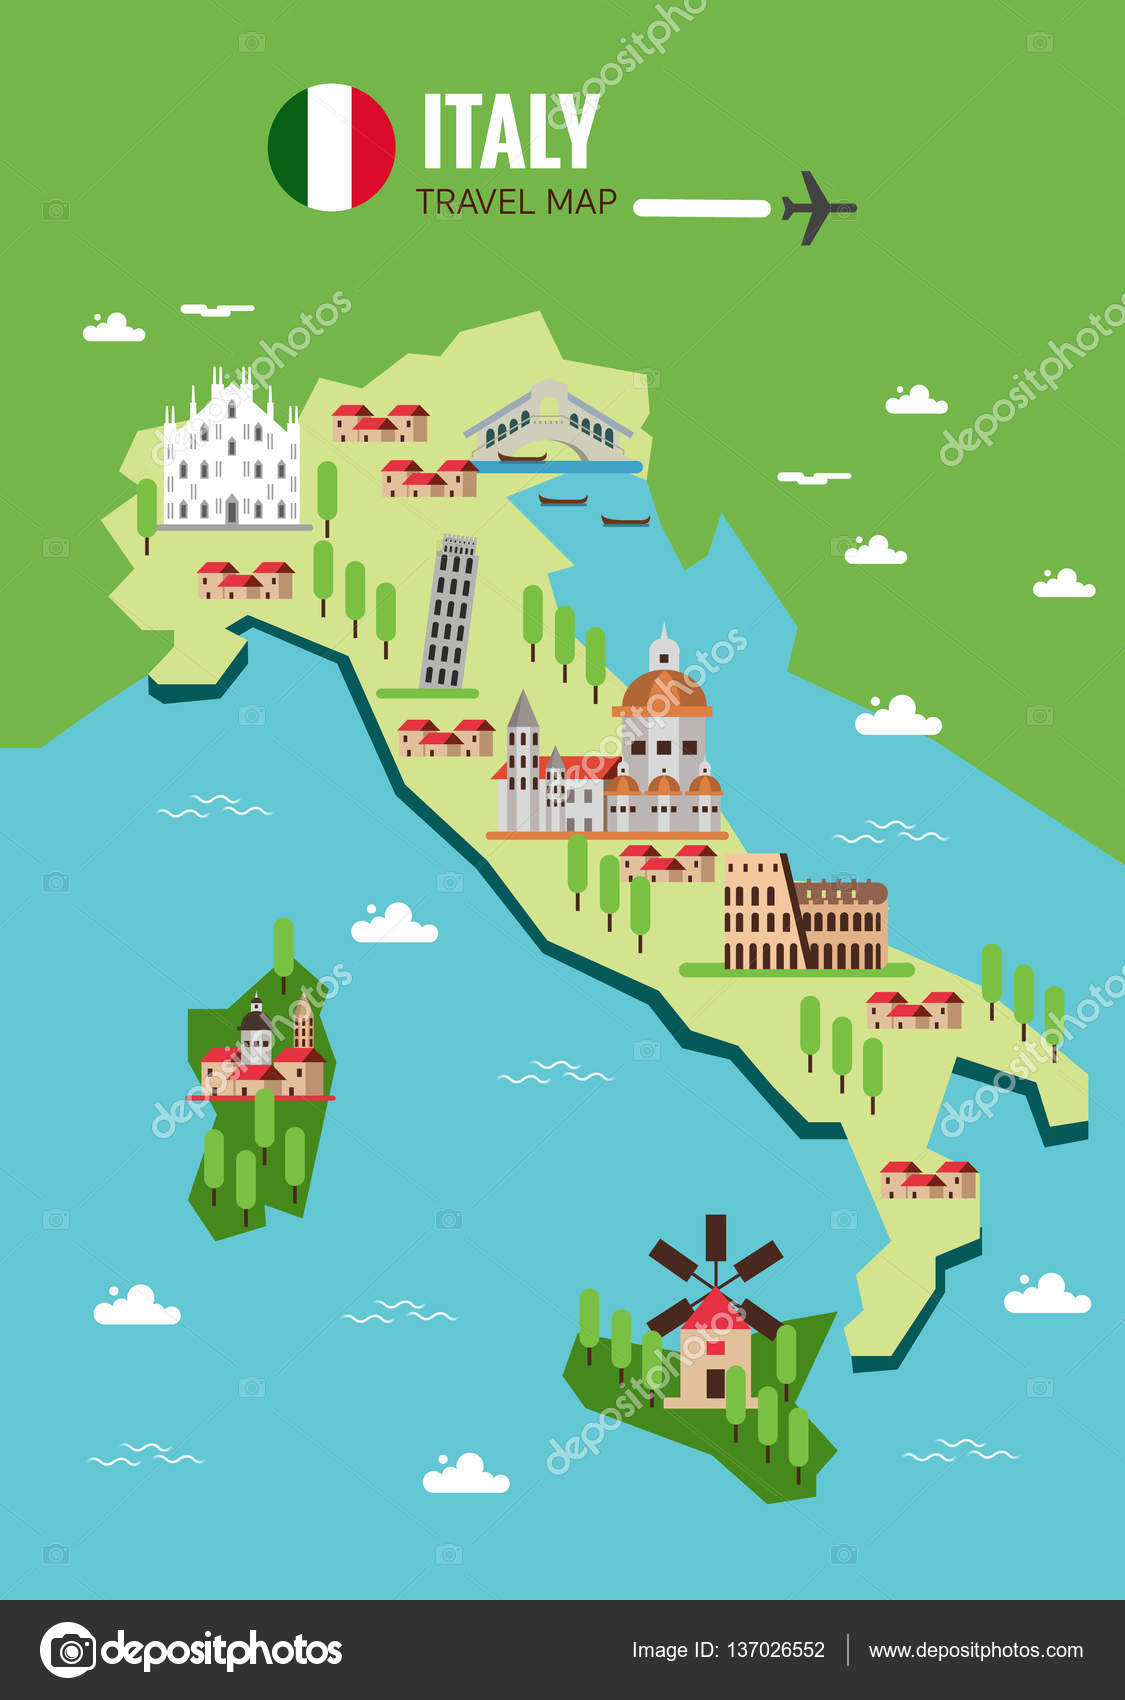 Italy travel map Italian Colosseum Milan Venice Sicilia and